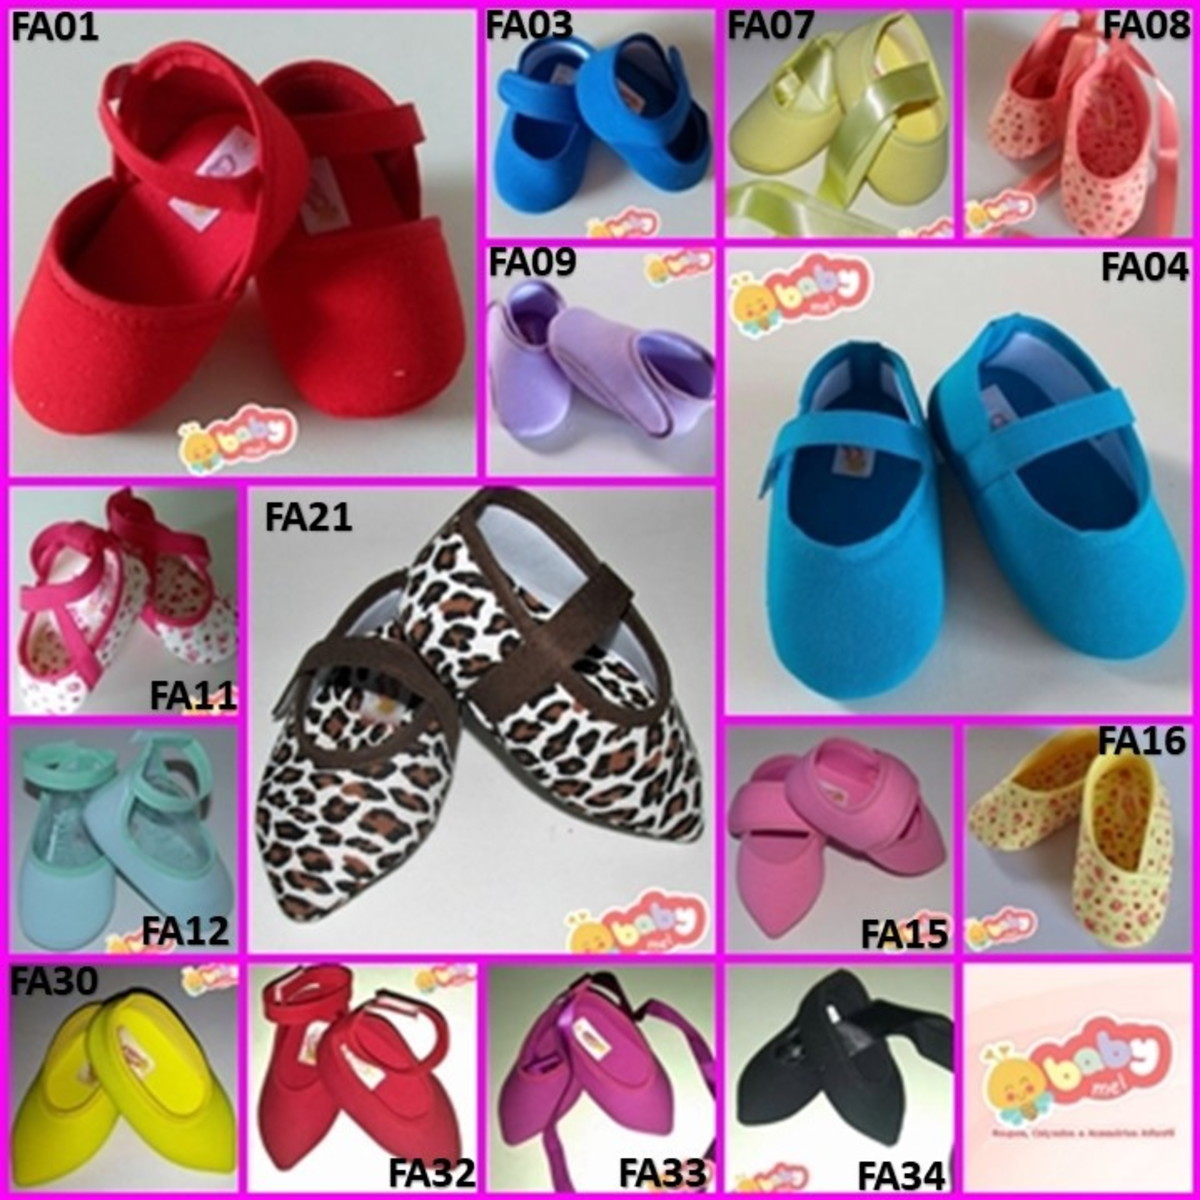 57172e1c0a KIT COM 15 PARES DE SAPATINHOS PARA CUSTOMIZAR no Elo7